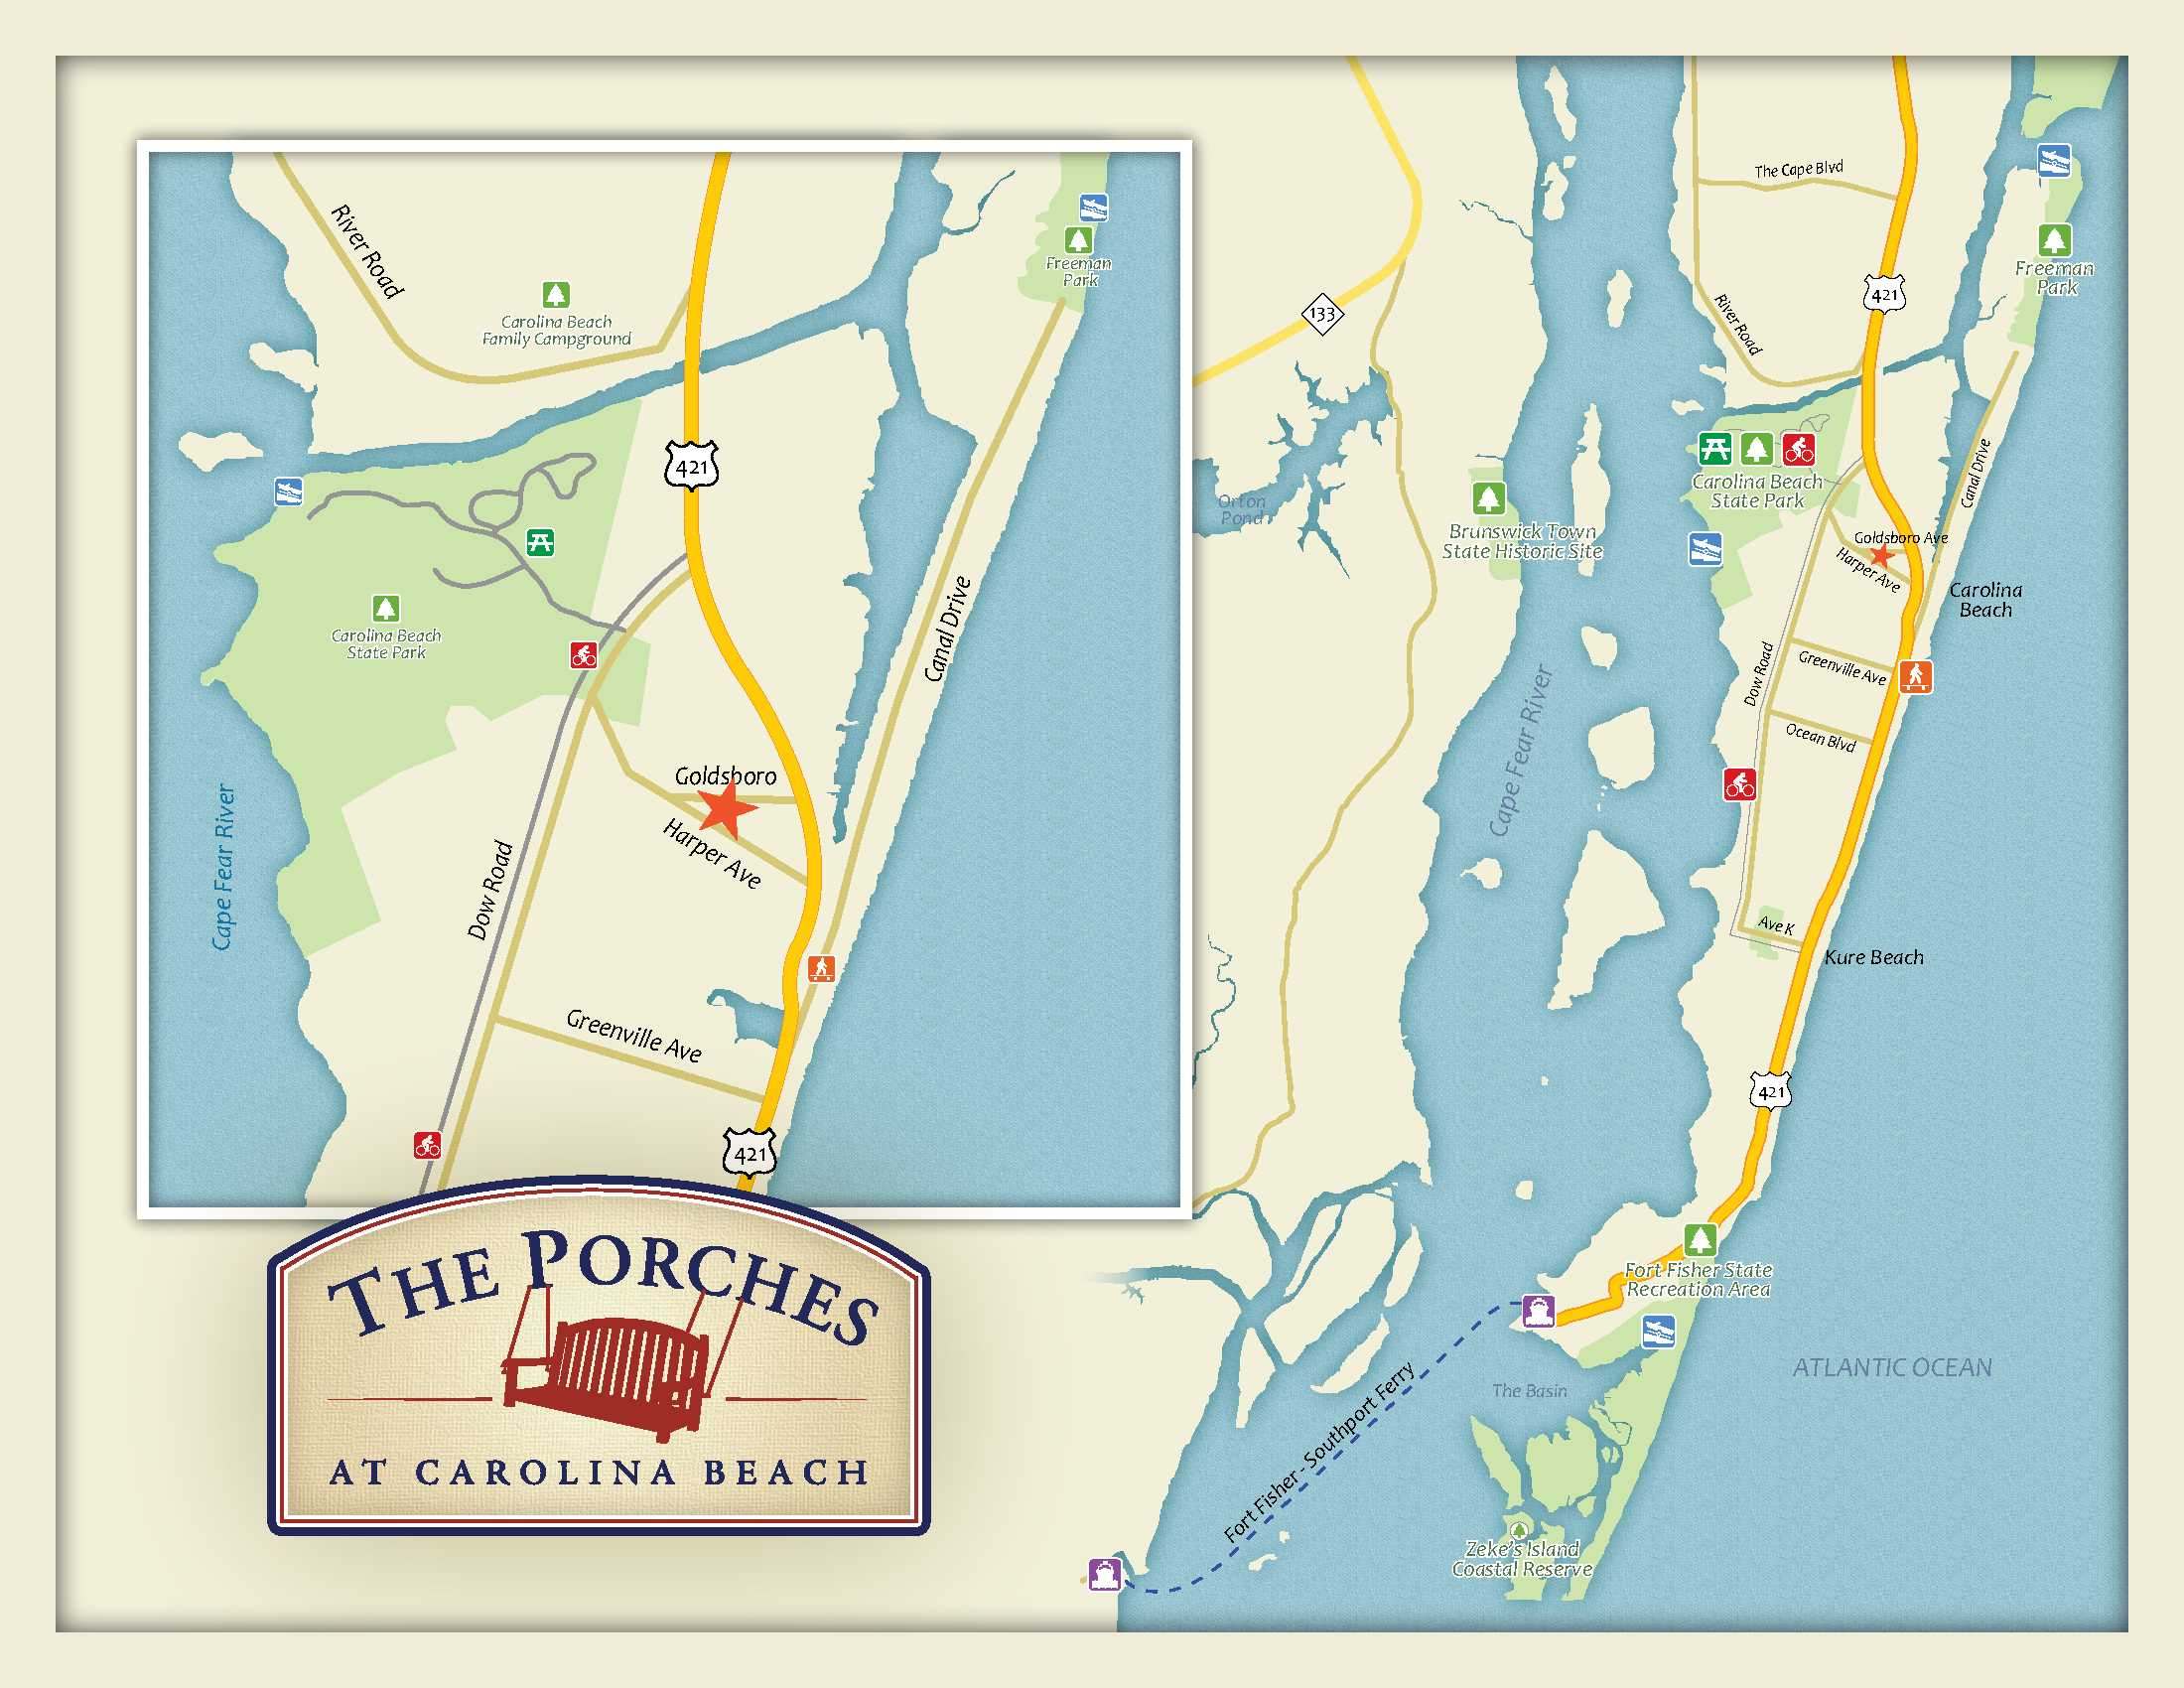 The Porches - Carolina Beach Cottages on st. helena nc map, cowee nc map, butters nc map, arapahoe nc map, united states nc map, springfield nc map, boone nc map, myrtle grove nc map, beaufort nc map, cary nc map, northampton nc map, north carolina map, ranlo nc map, new hanover county nc map, alliance nc map, cedar rock nc map, bath nc map, durants neck nc map, wilmington nc map, mt. mitchell nc map,